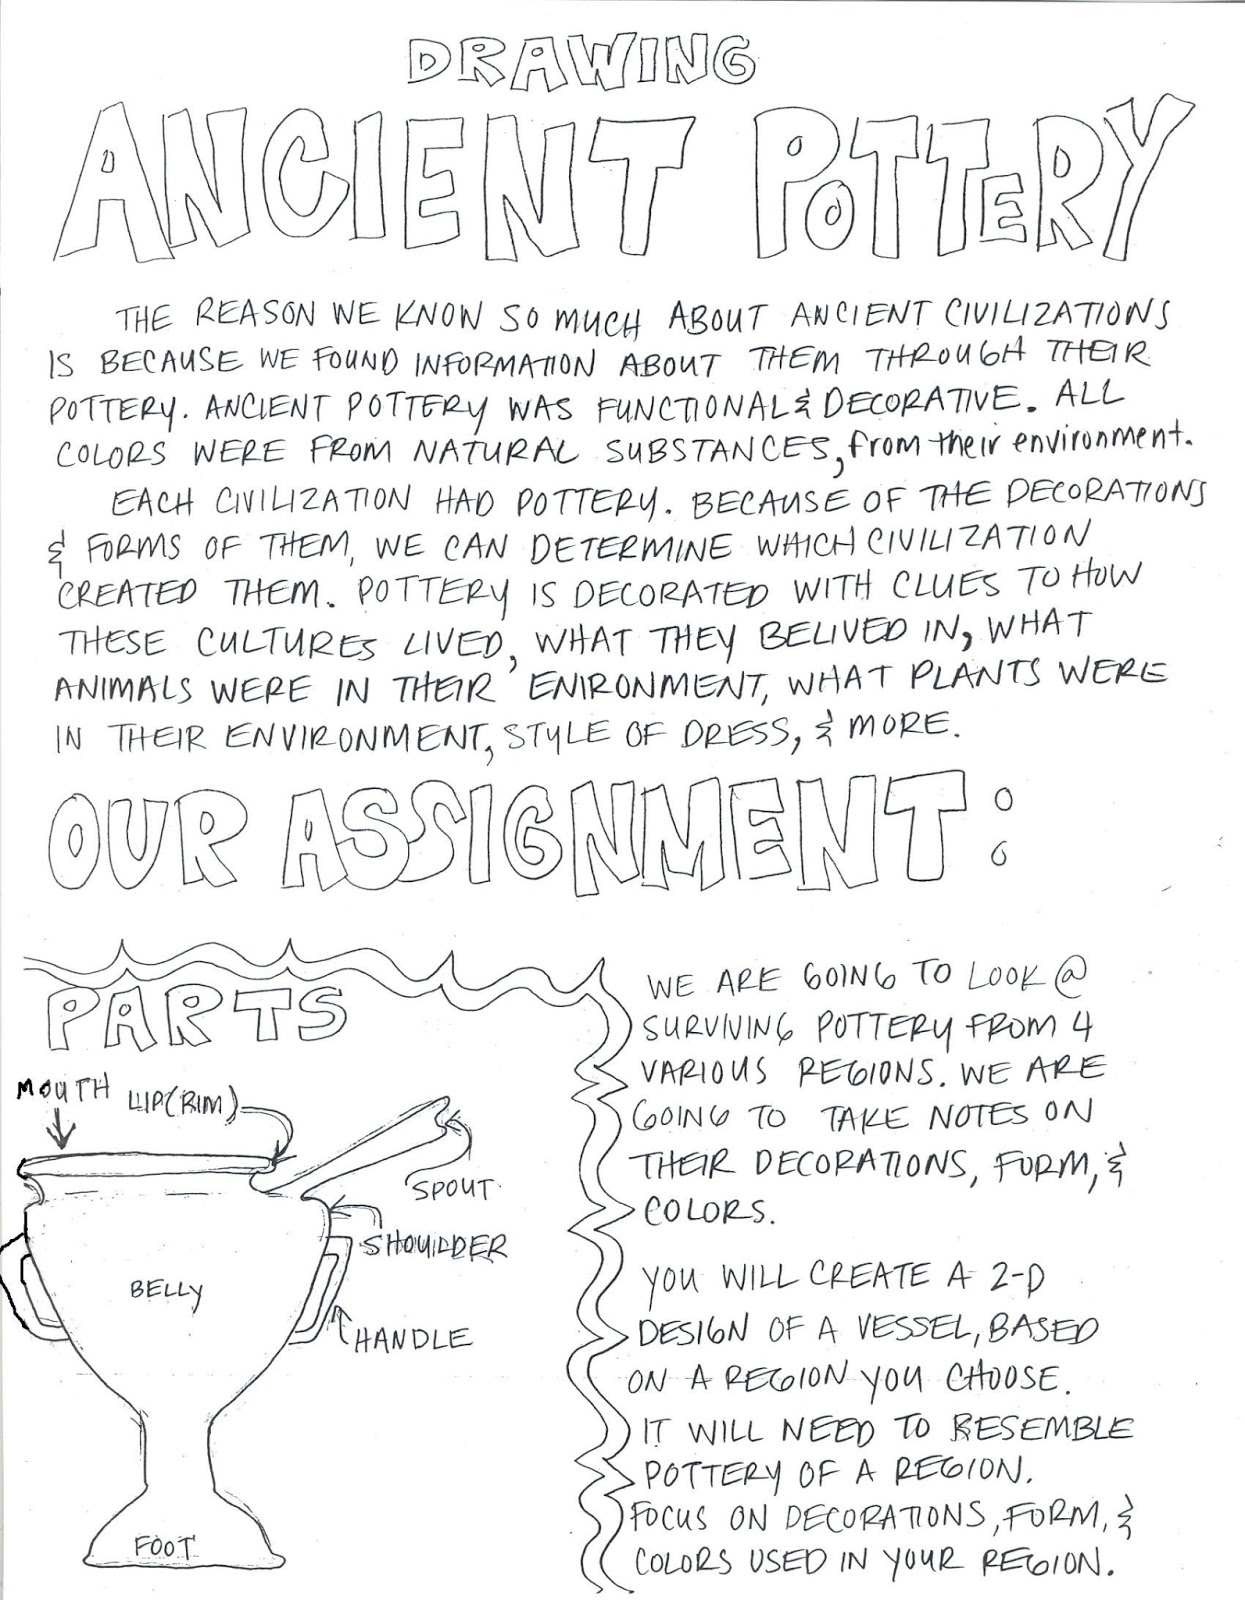 The Lost Sock Ancient Pottery Designs